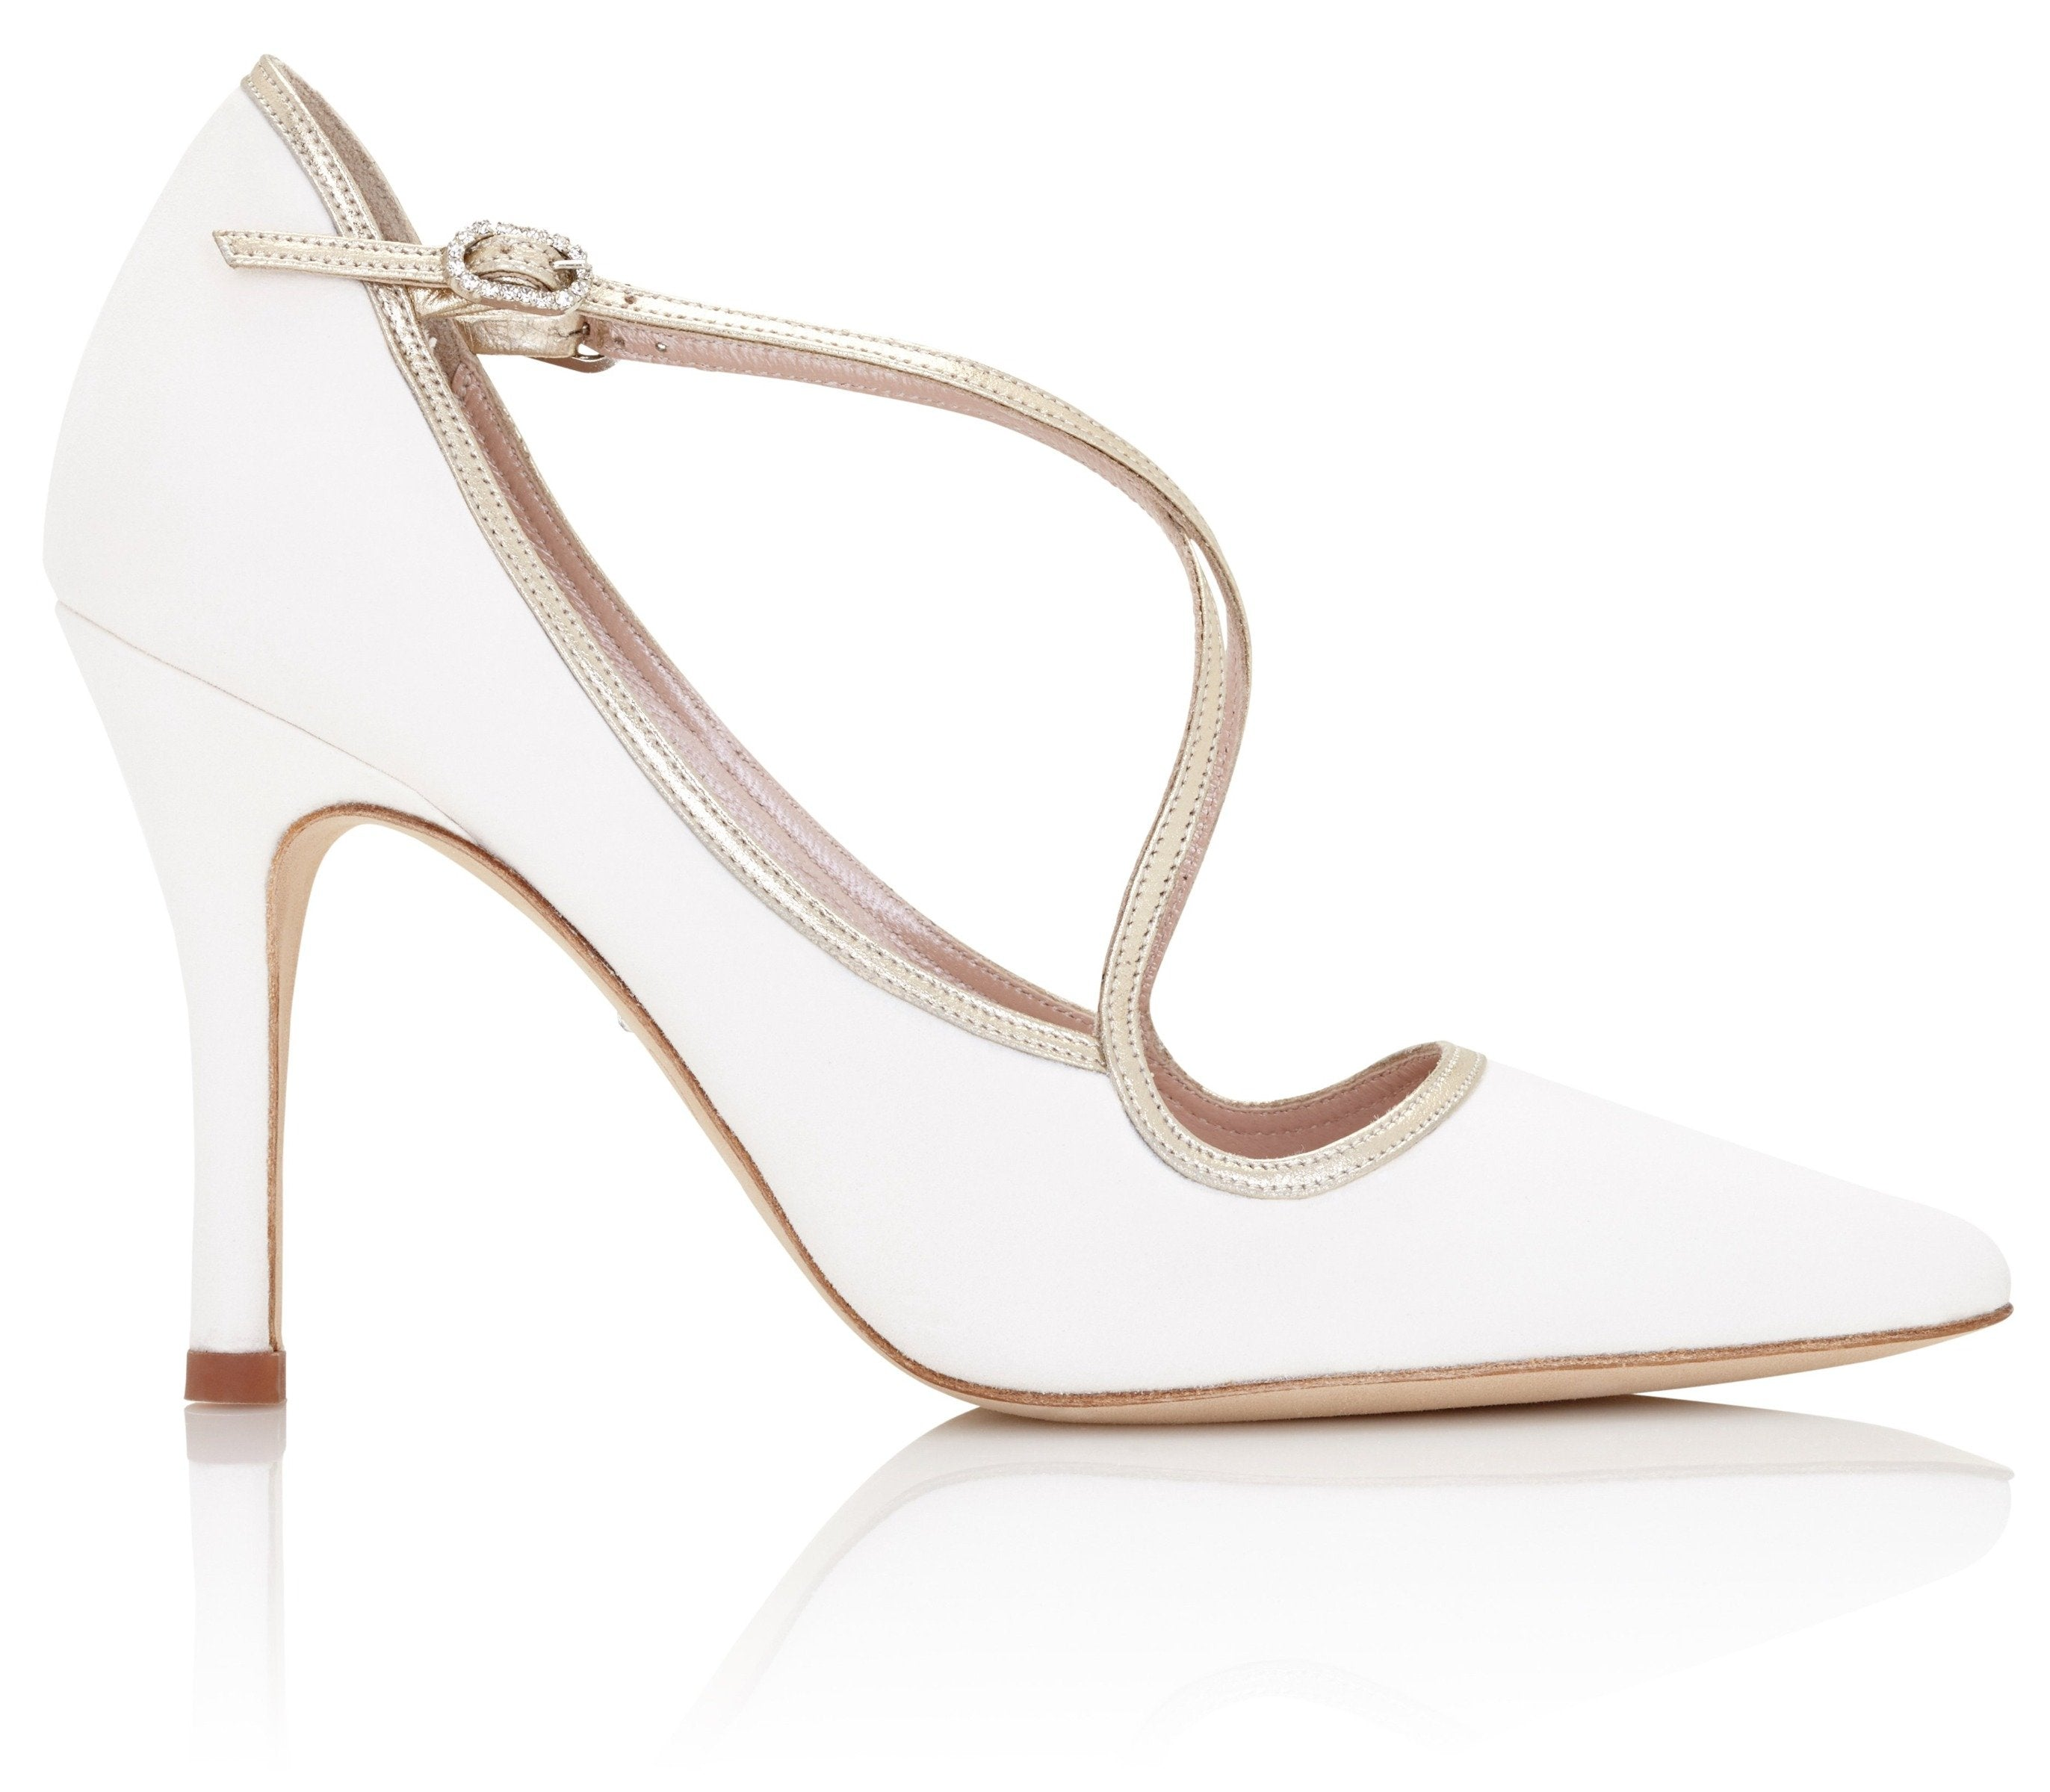 Ivory and Gold Pointed Toe Wedding Shoes with Gold Cross-Over Straps